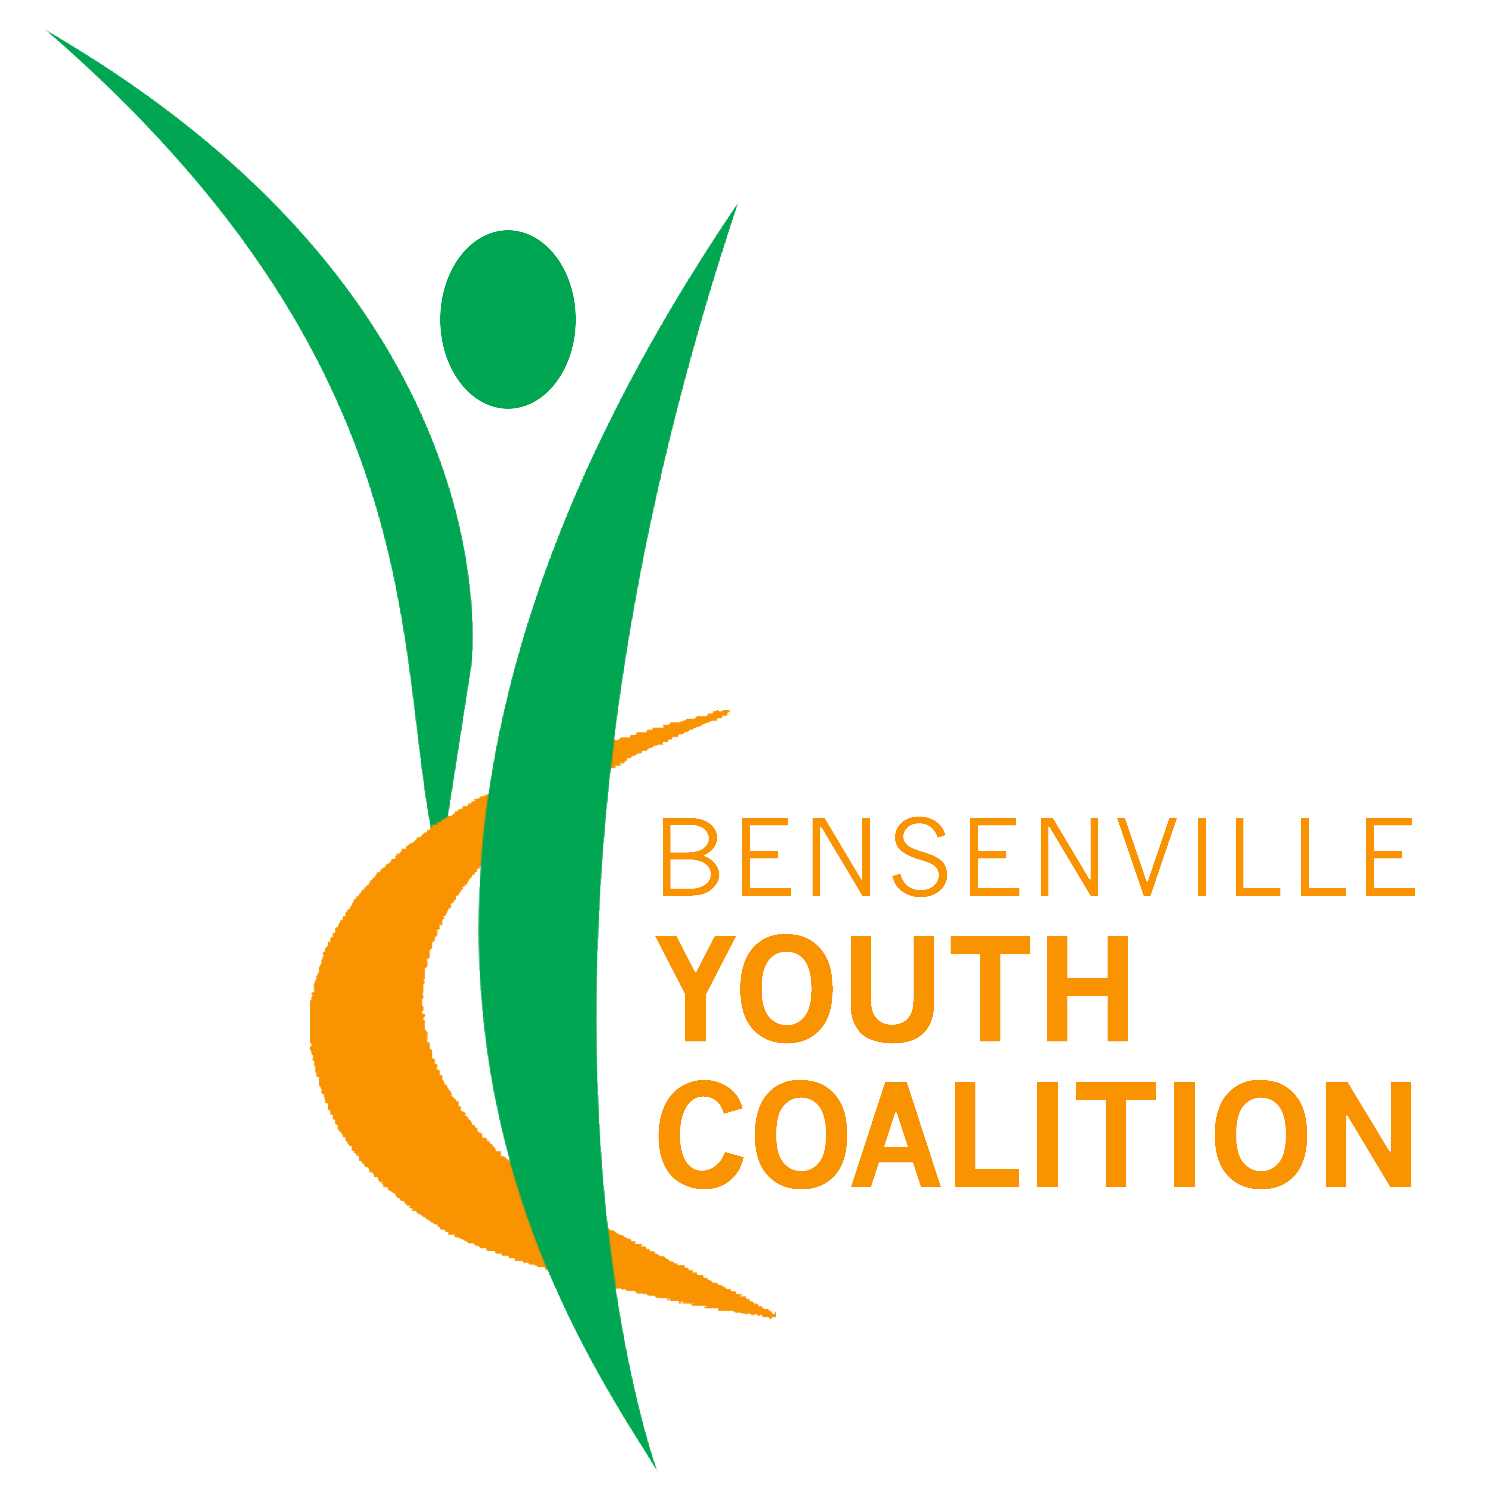 bensenville youth coalition logo.png